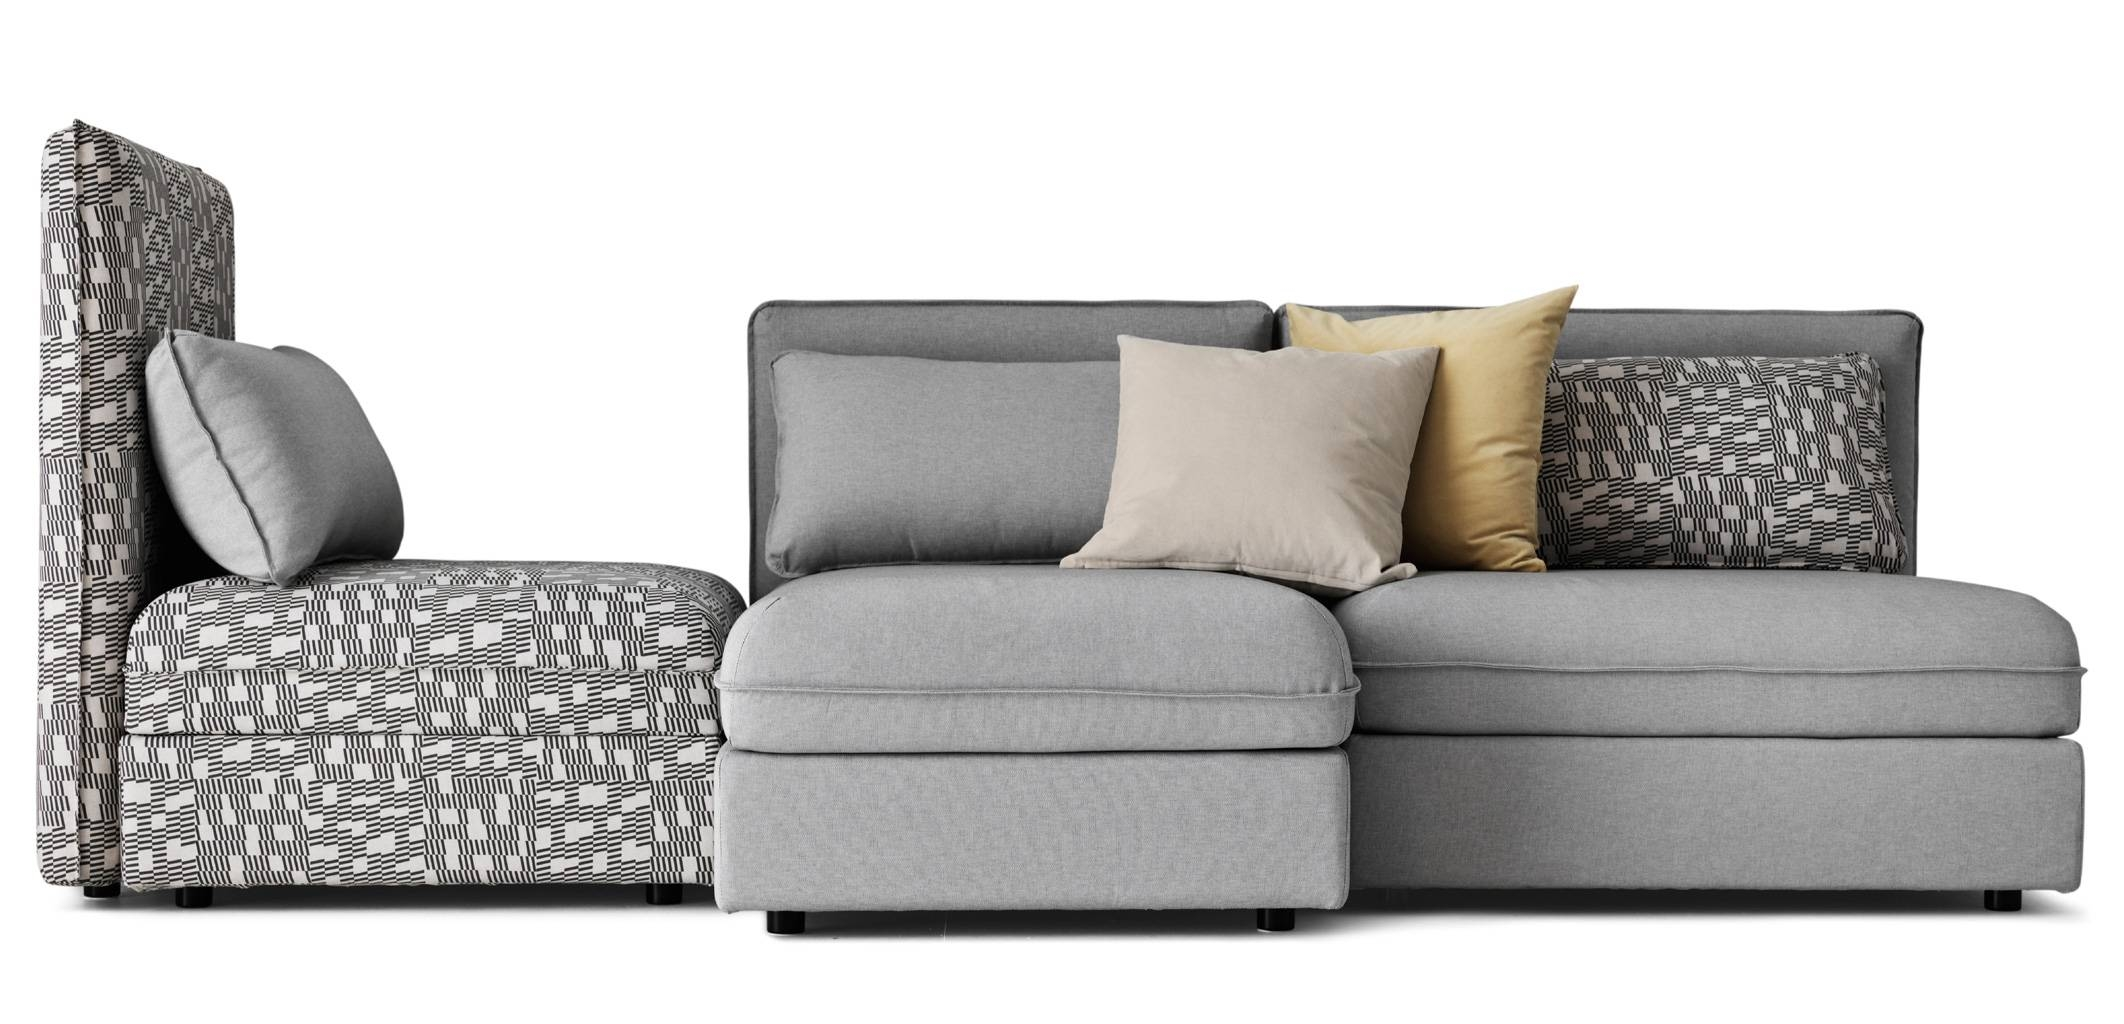 Modular & Sectional Sofas | Ikea Ireland in Small Sofas Ikea (Image 17 of 30)